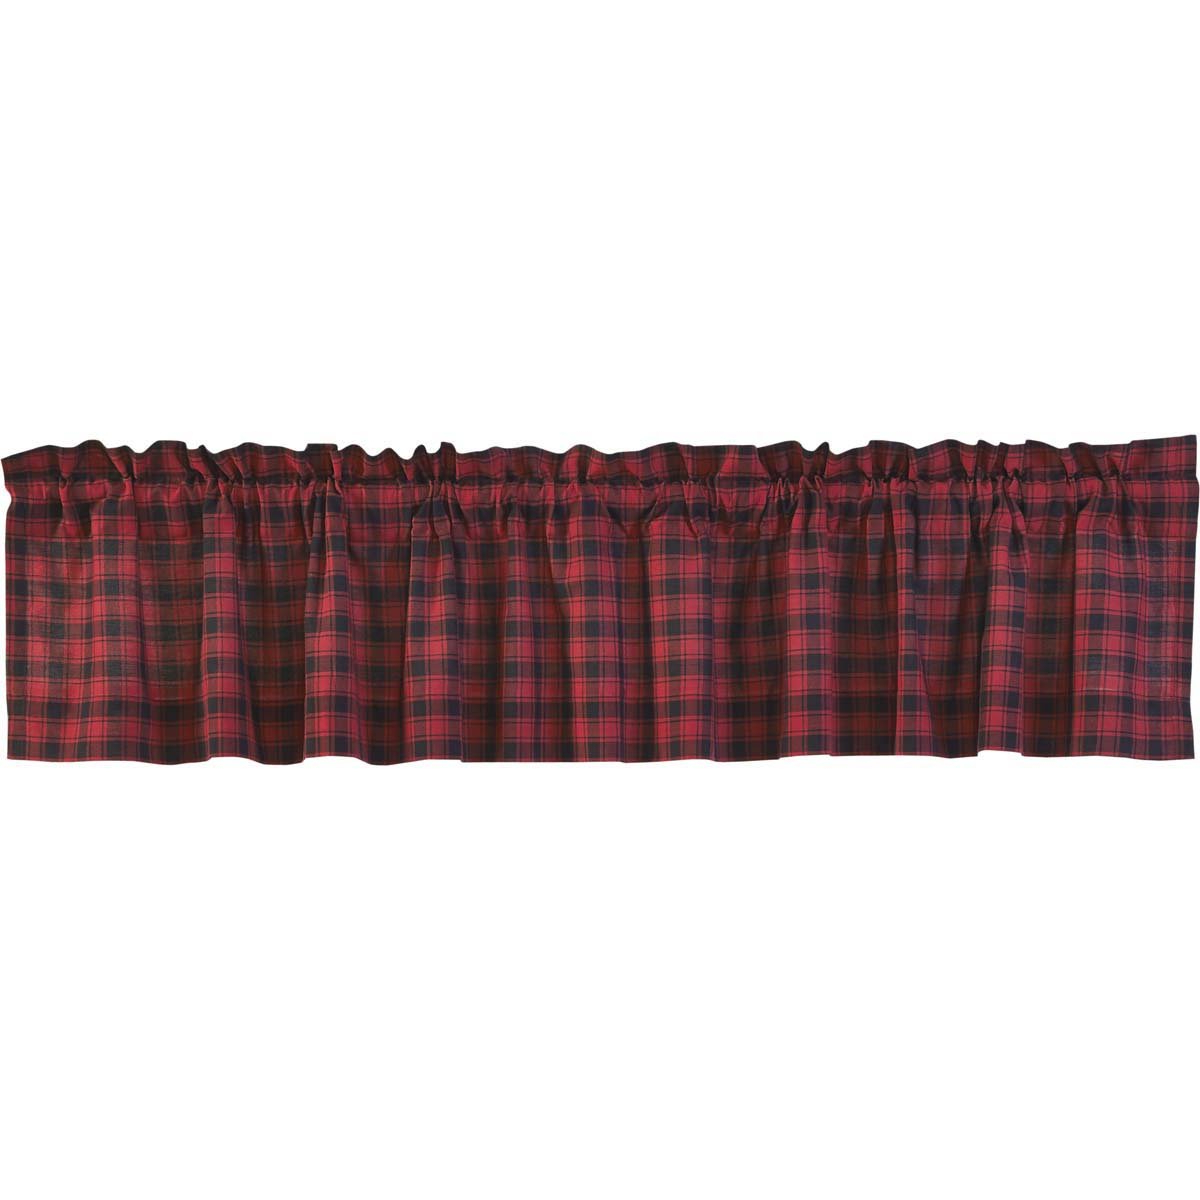 Vhc Brands Rustic & Lodge Kitchen Window Curtains – Cumberland Red Valance, 16x60, Chili Pepper Regarding Preferred Red Rustic Kitchen Curtains (View 15 of 20)